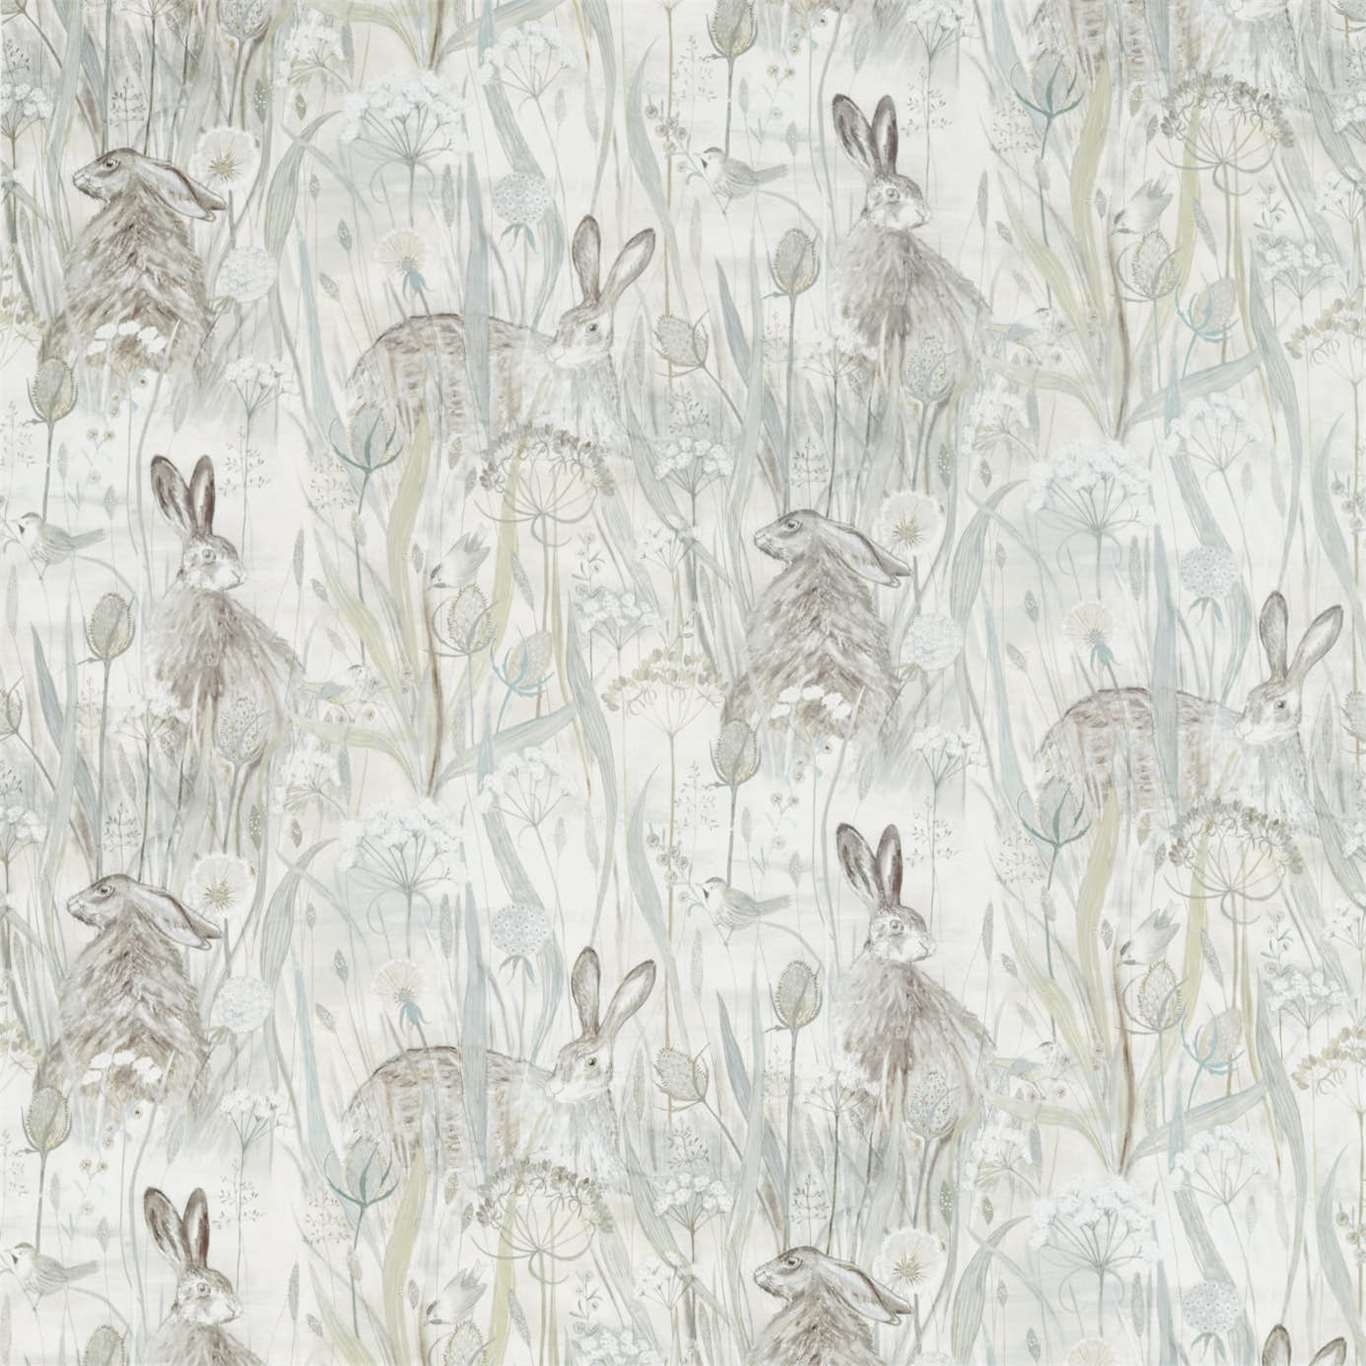 Gordon Smith Malvern Ltd Sanderson Dune Hares Mist